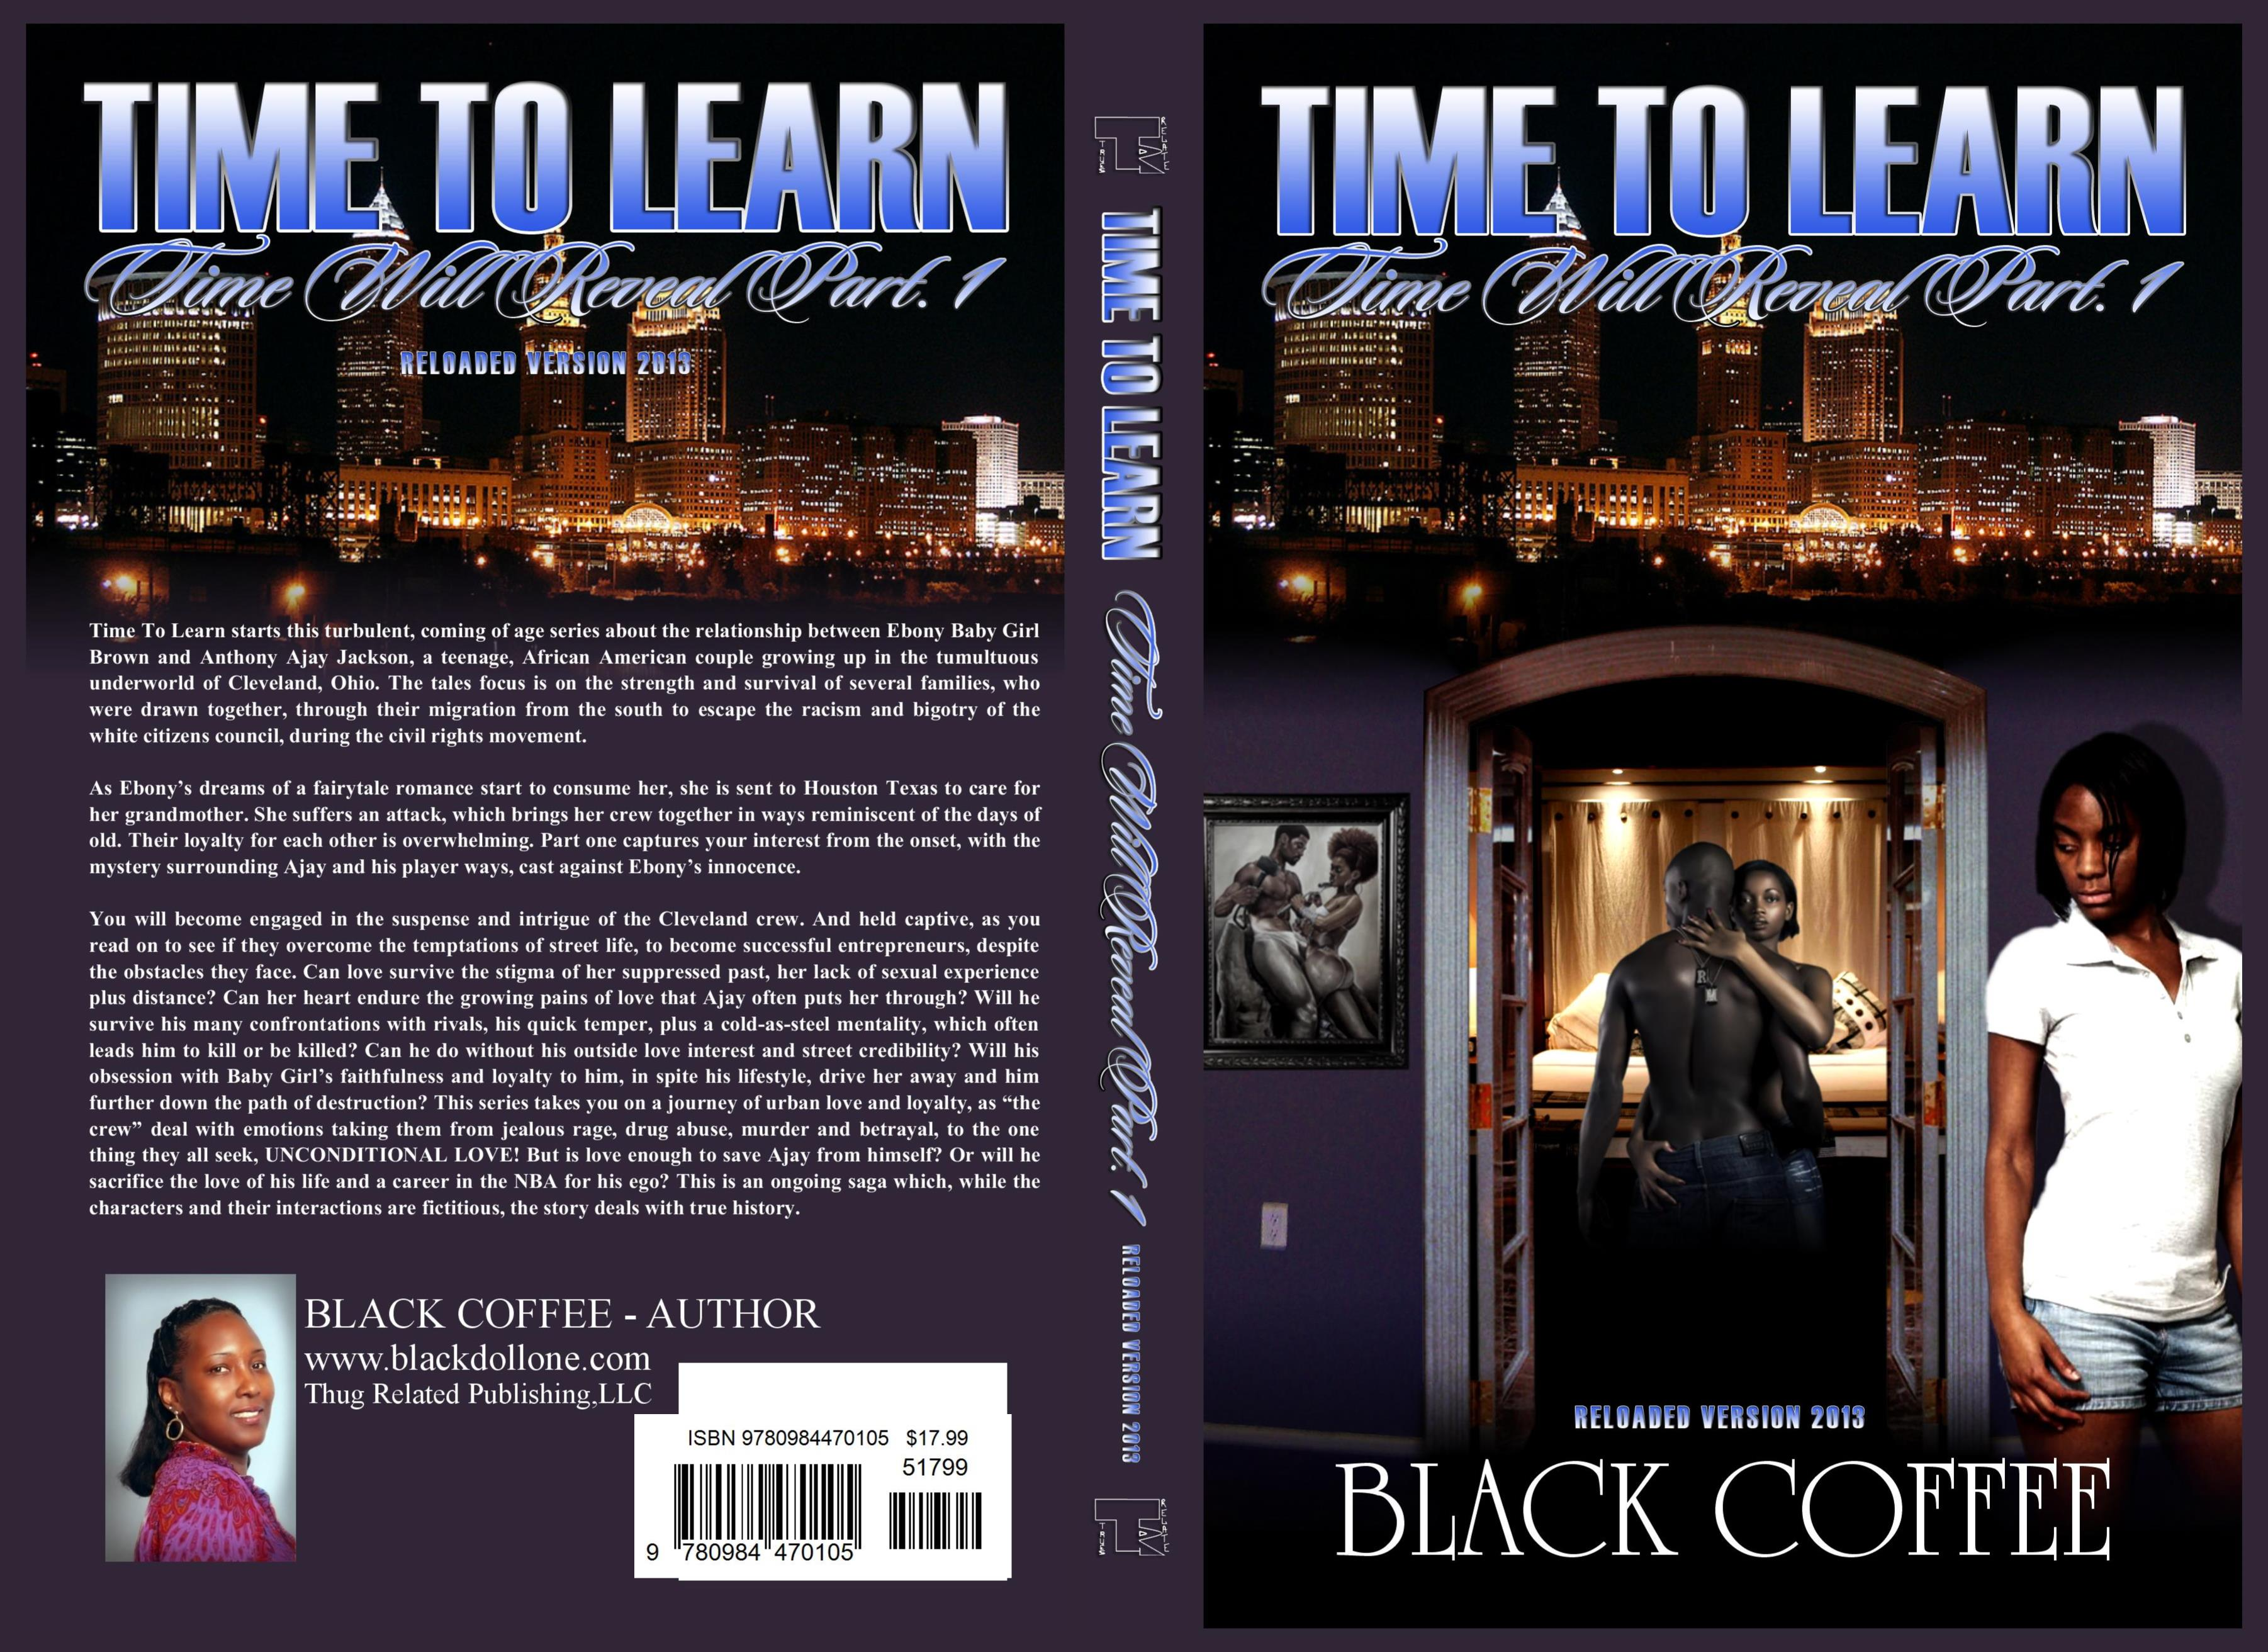 TIME TO LEARN-RELOADED-Time Will Reveal part 1 cover image